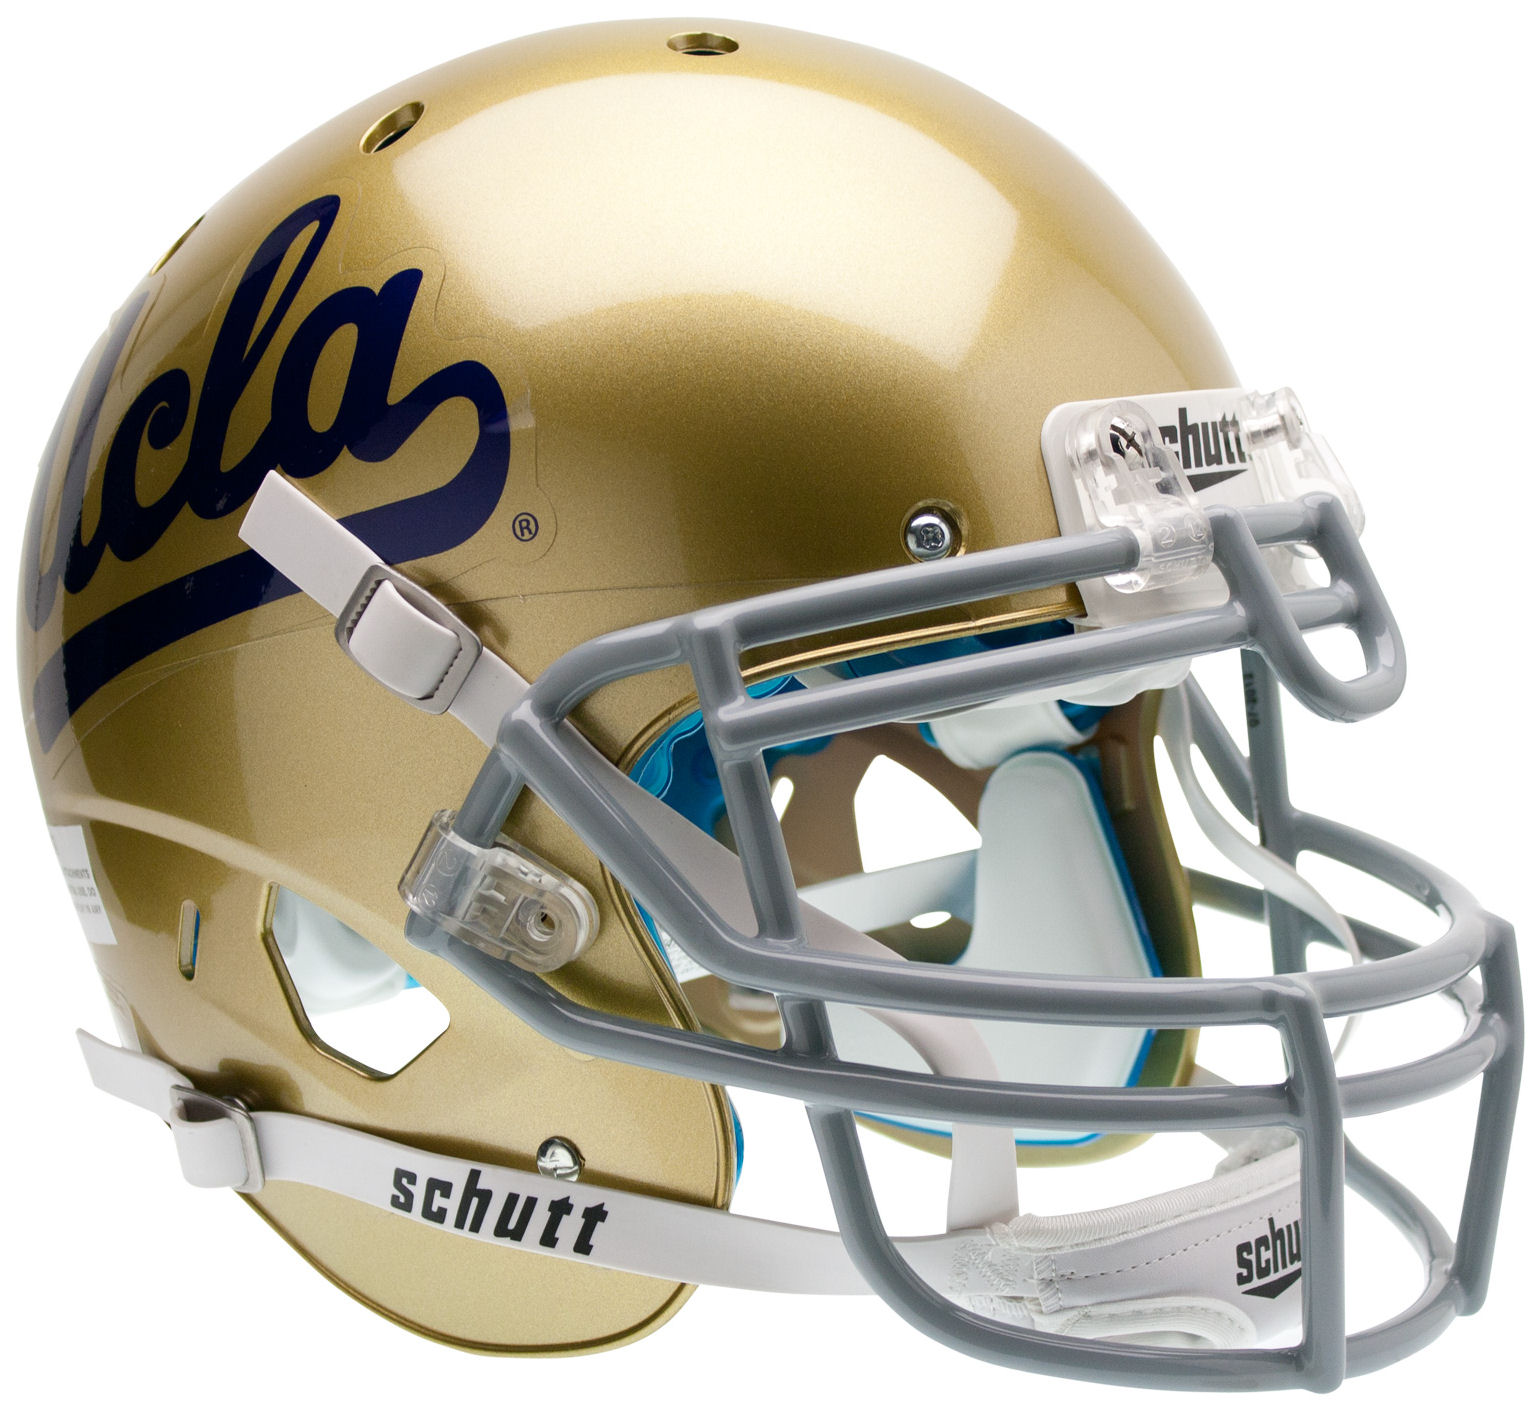 UCLA Bruins Authentic College XP Football Helmet Schutt